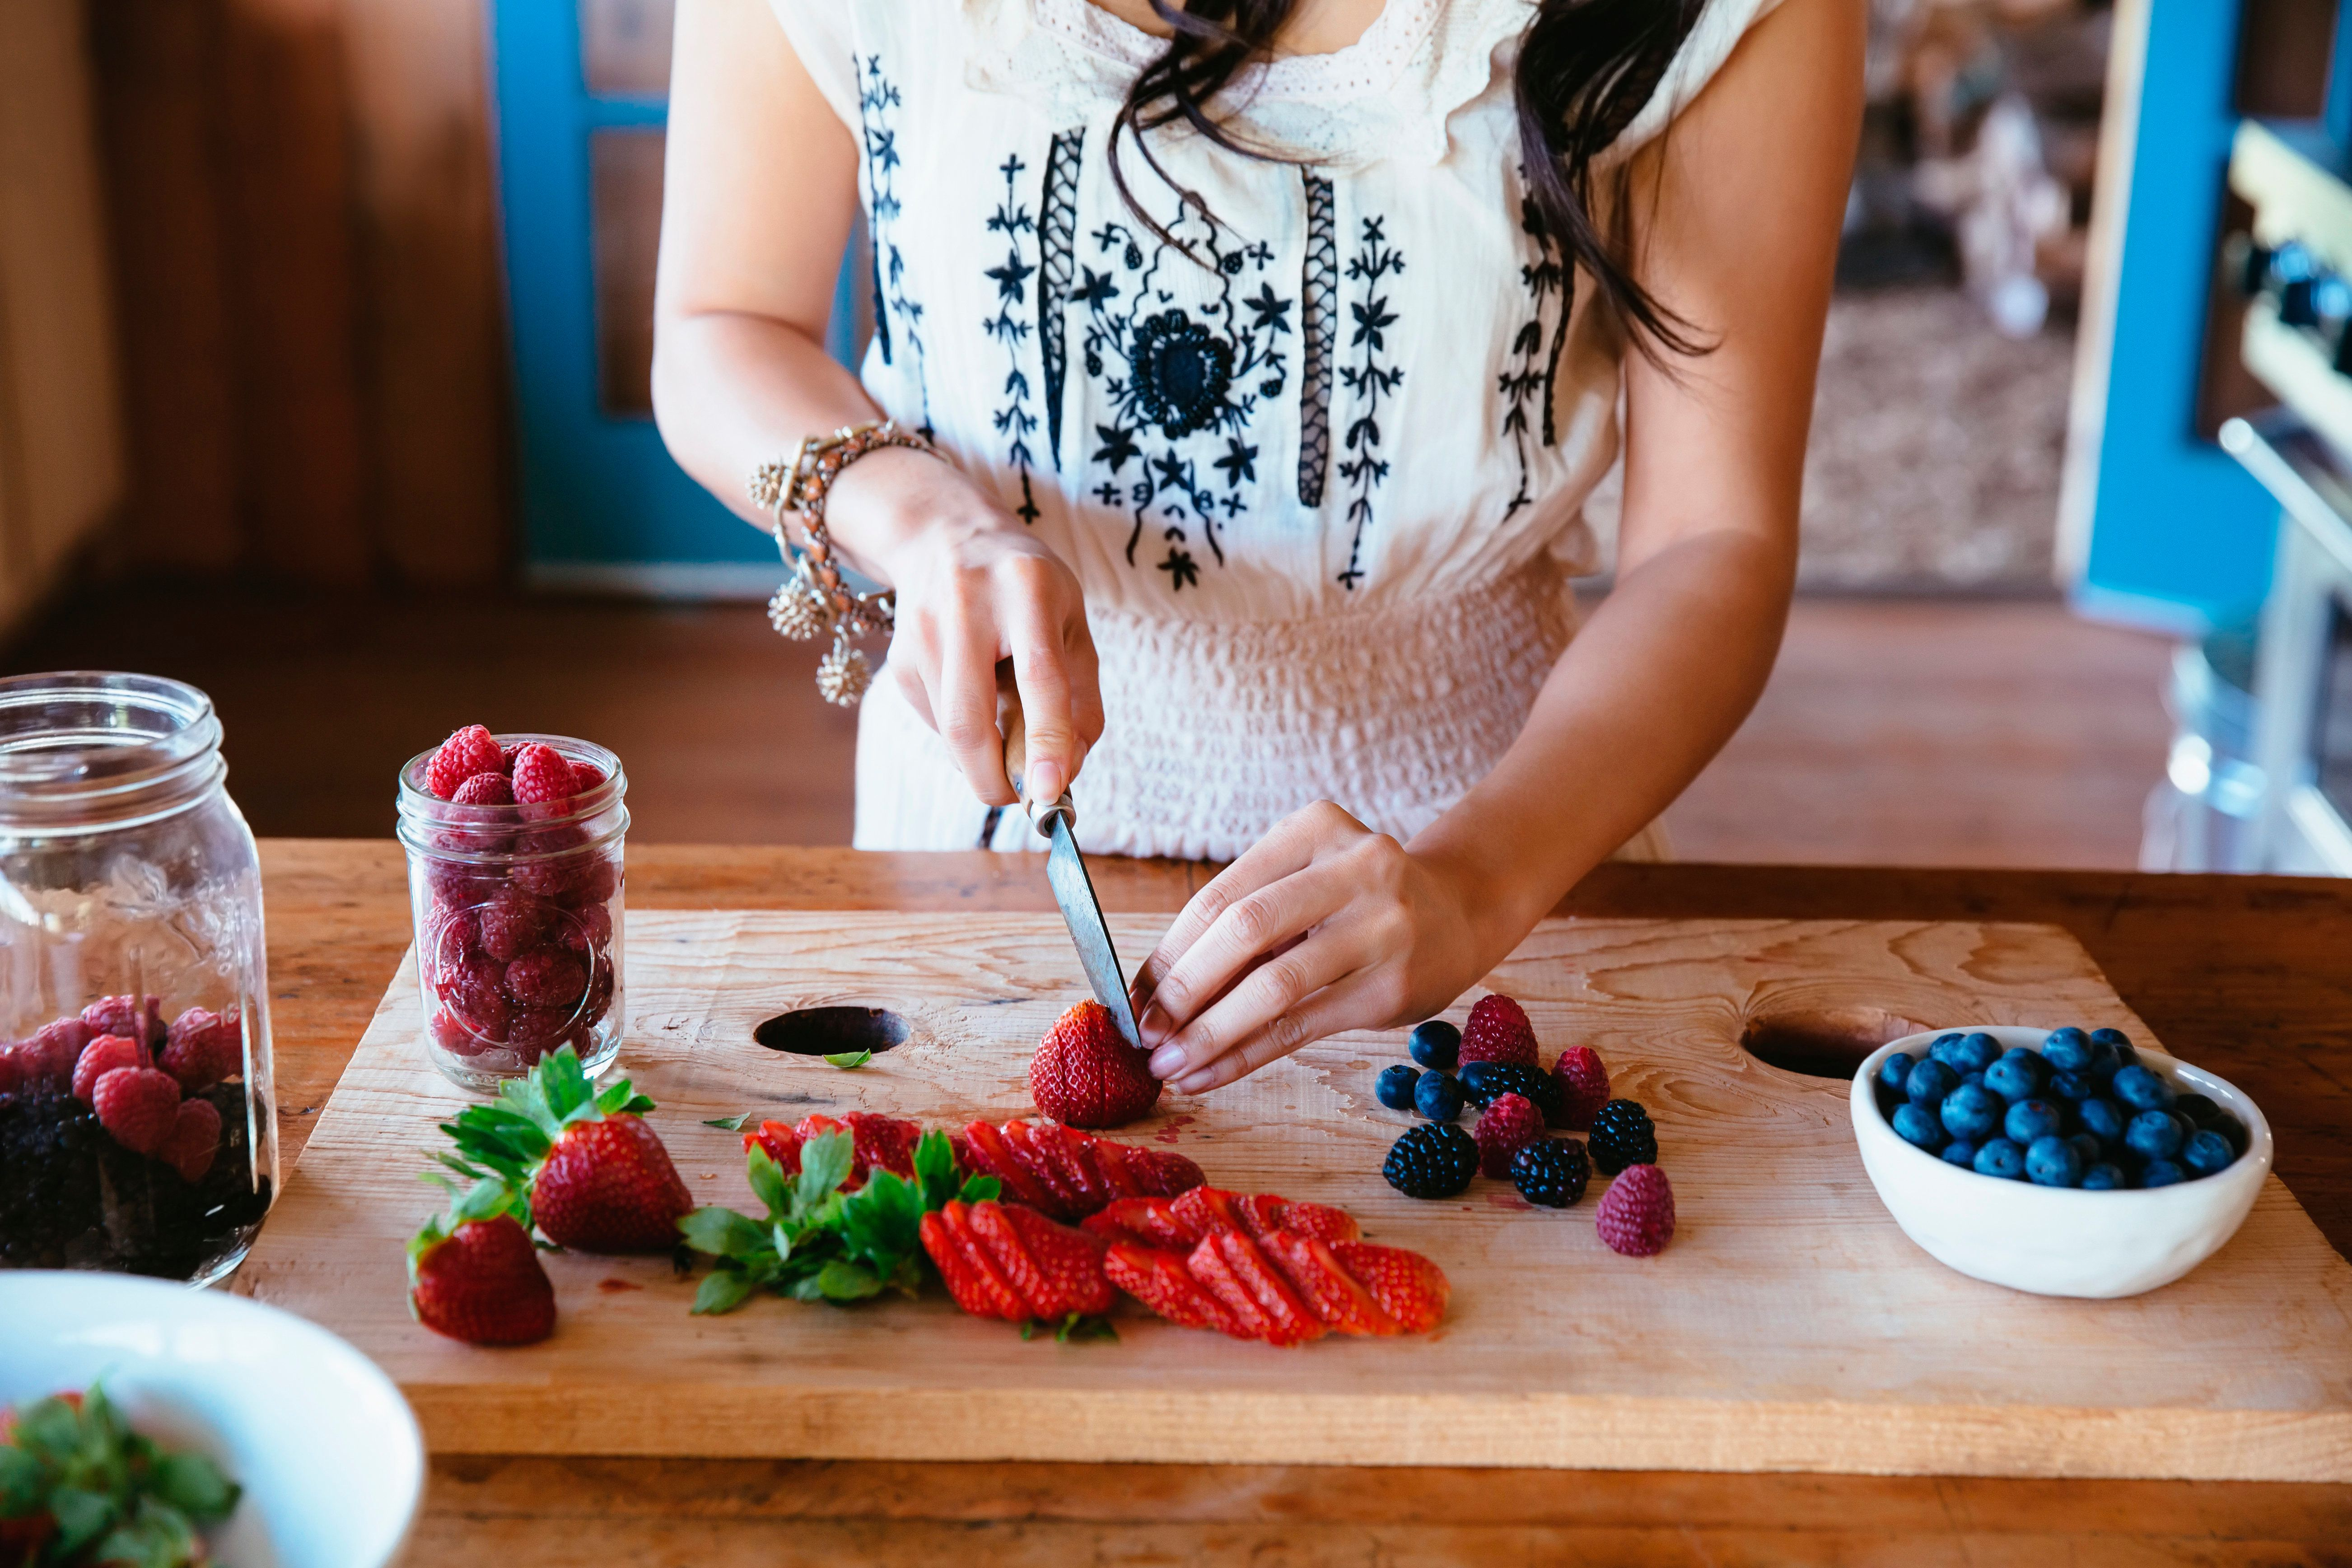 We talked to experts about simple ways you can prep, store and arrange your food to get the mostout of a healthier life